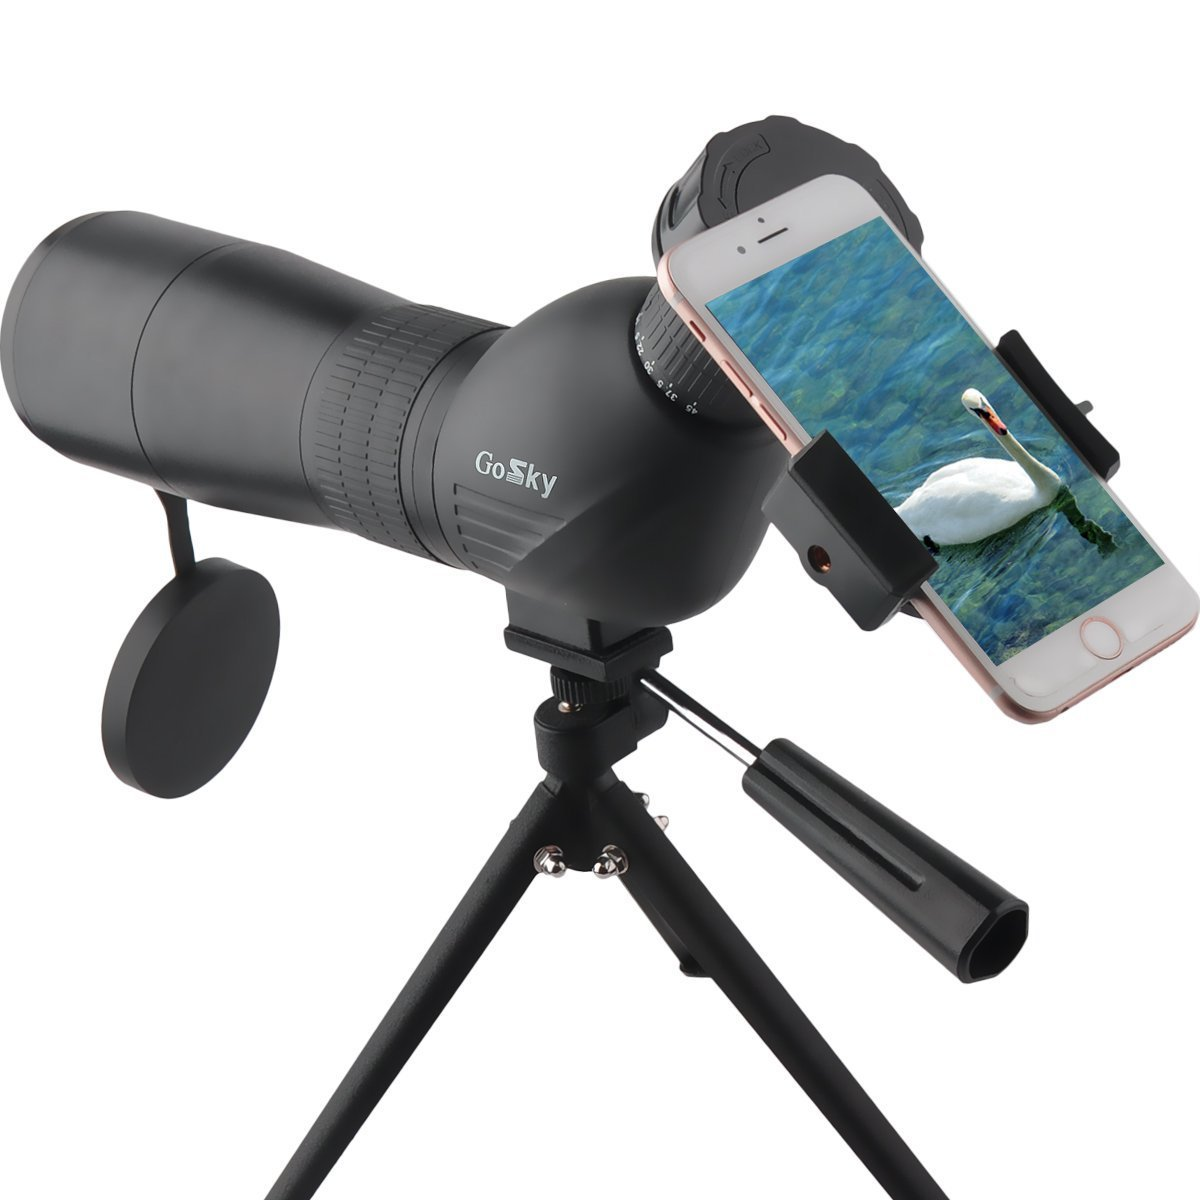 Gosky Skybird 60mm Spotting Scope & Quick Smartphone Mount Kit - with Metal TabletopTripod - Capture and Share Beauty in Distant World by Gosky